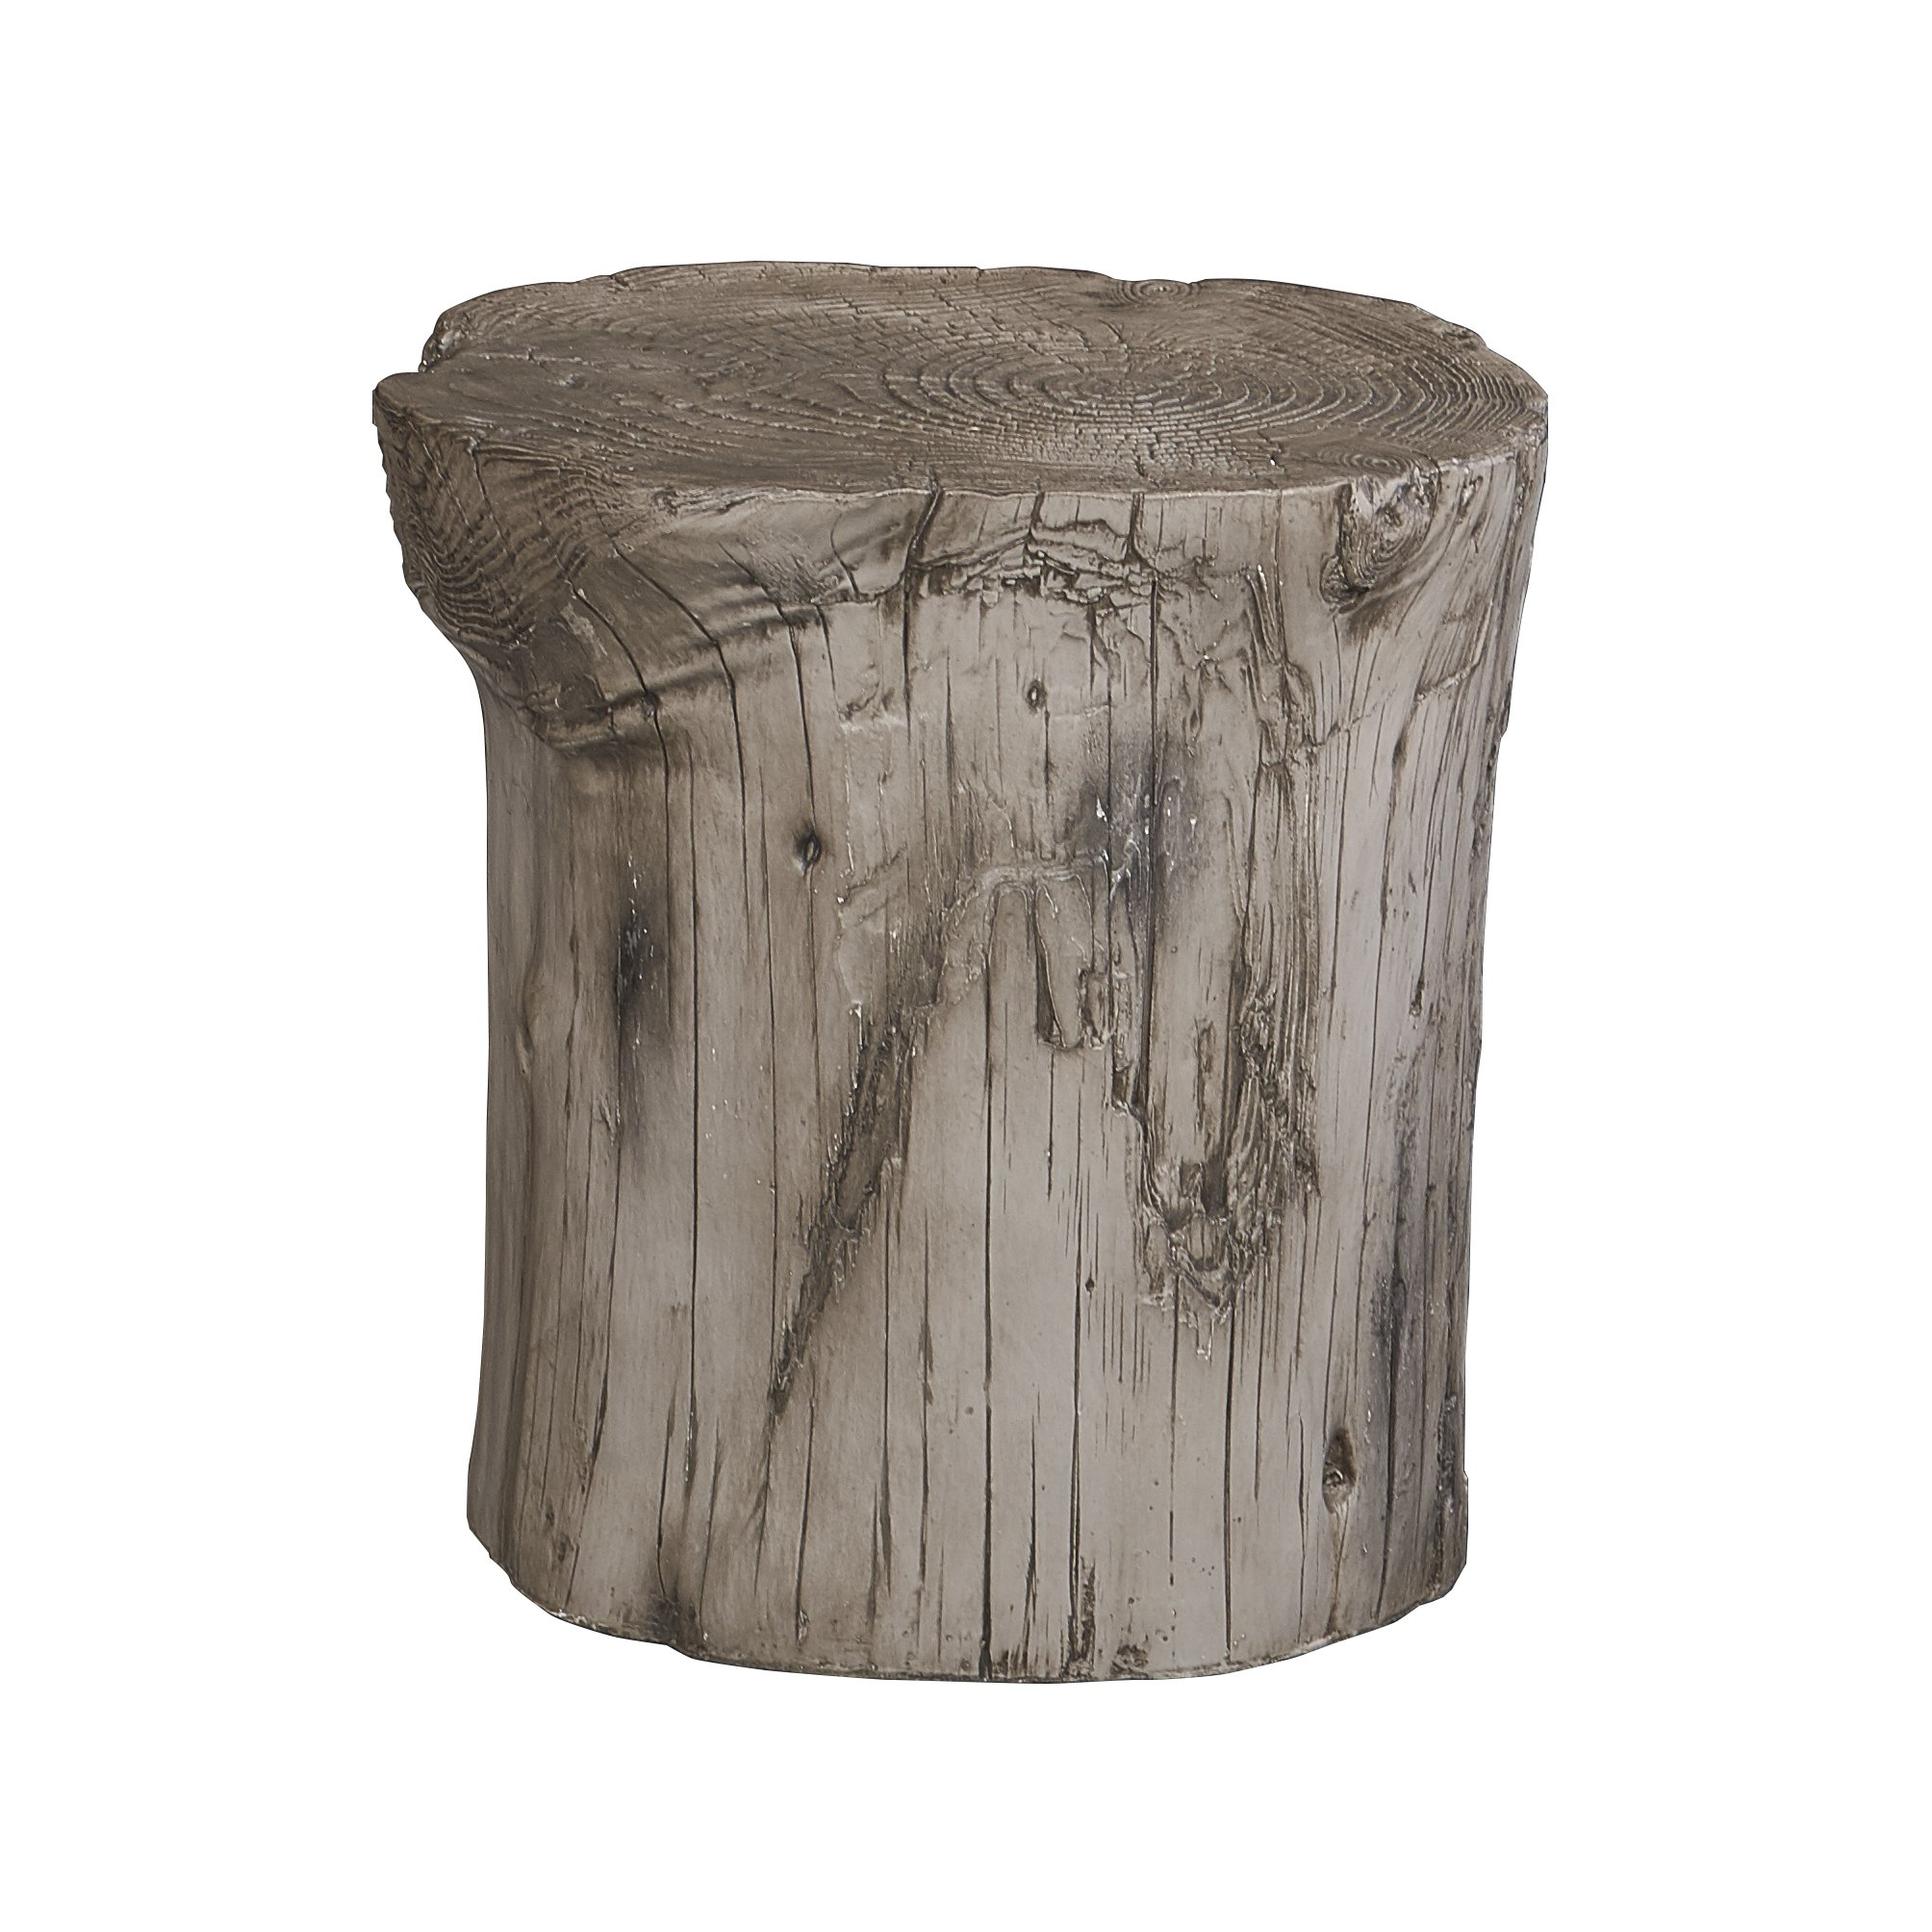 hunter grey tree stump accent table free shipping today wood winsome battery operated touch lamps fire pit mirrored bedside next entry console black storage cabinet multi colored